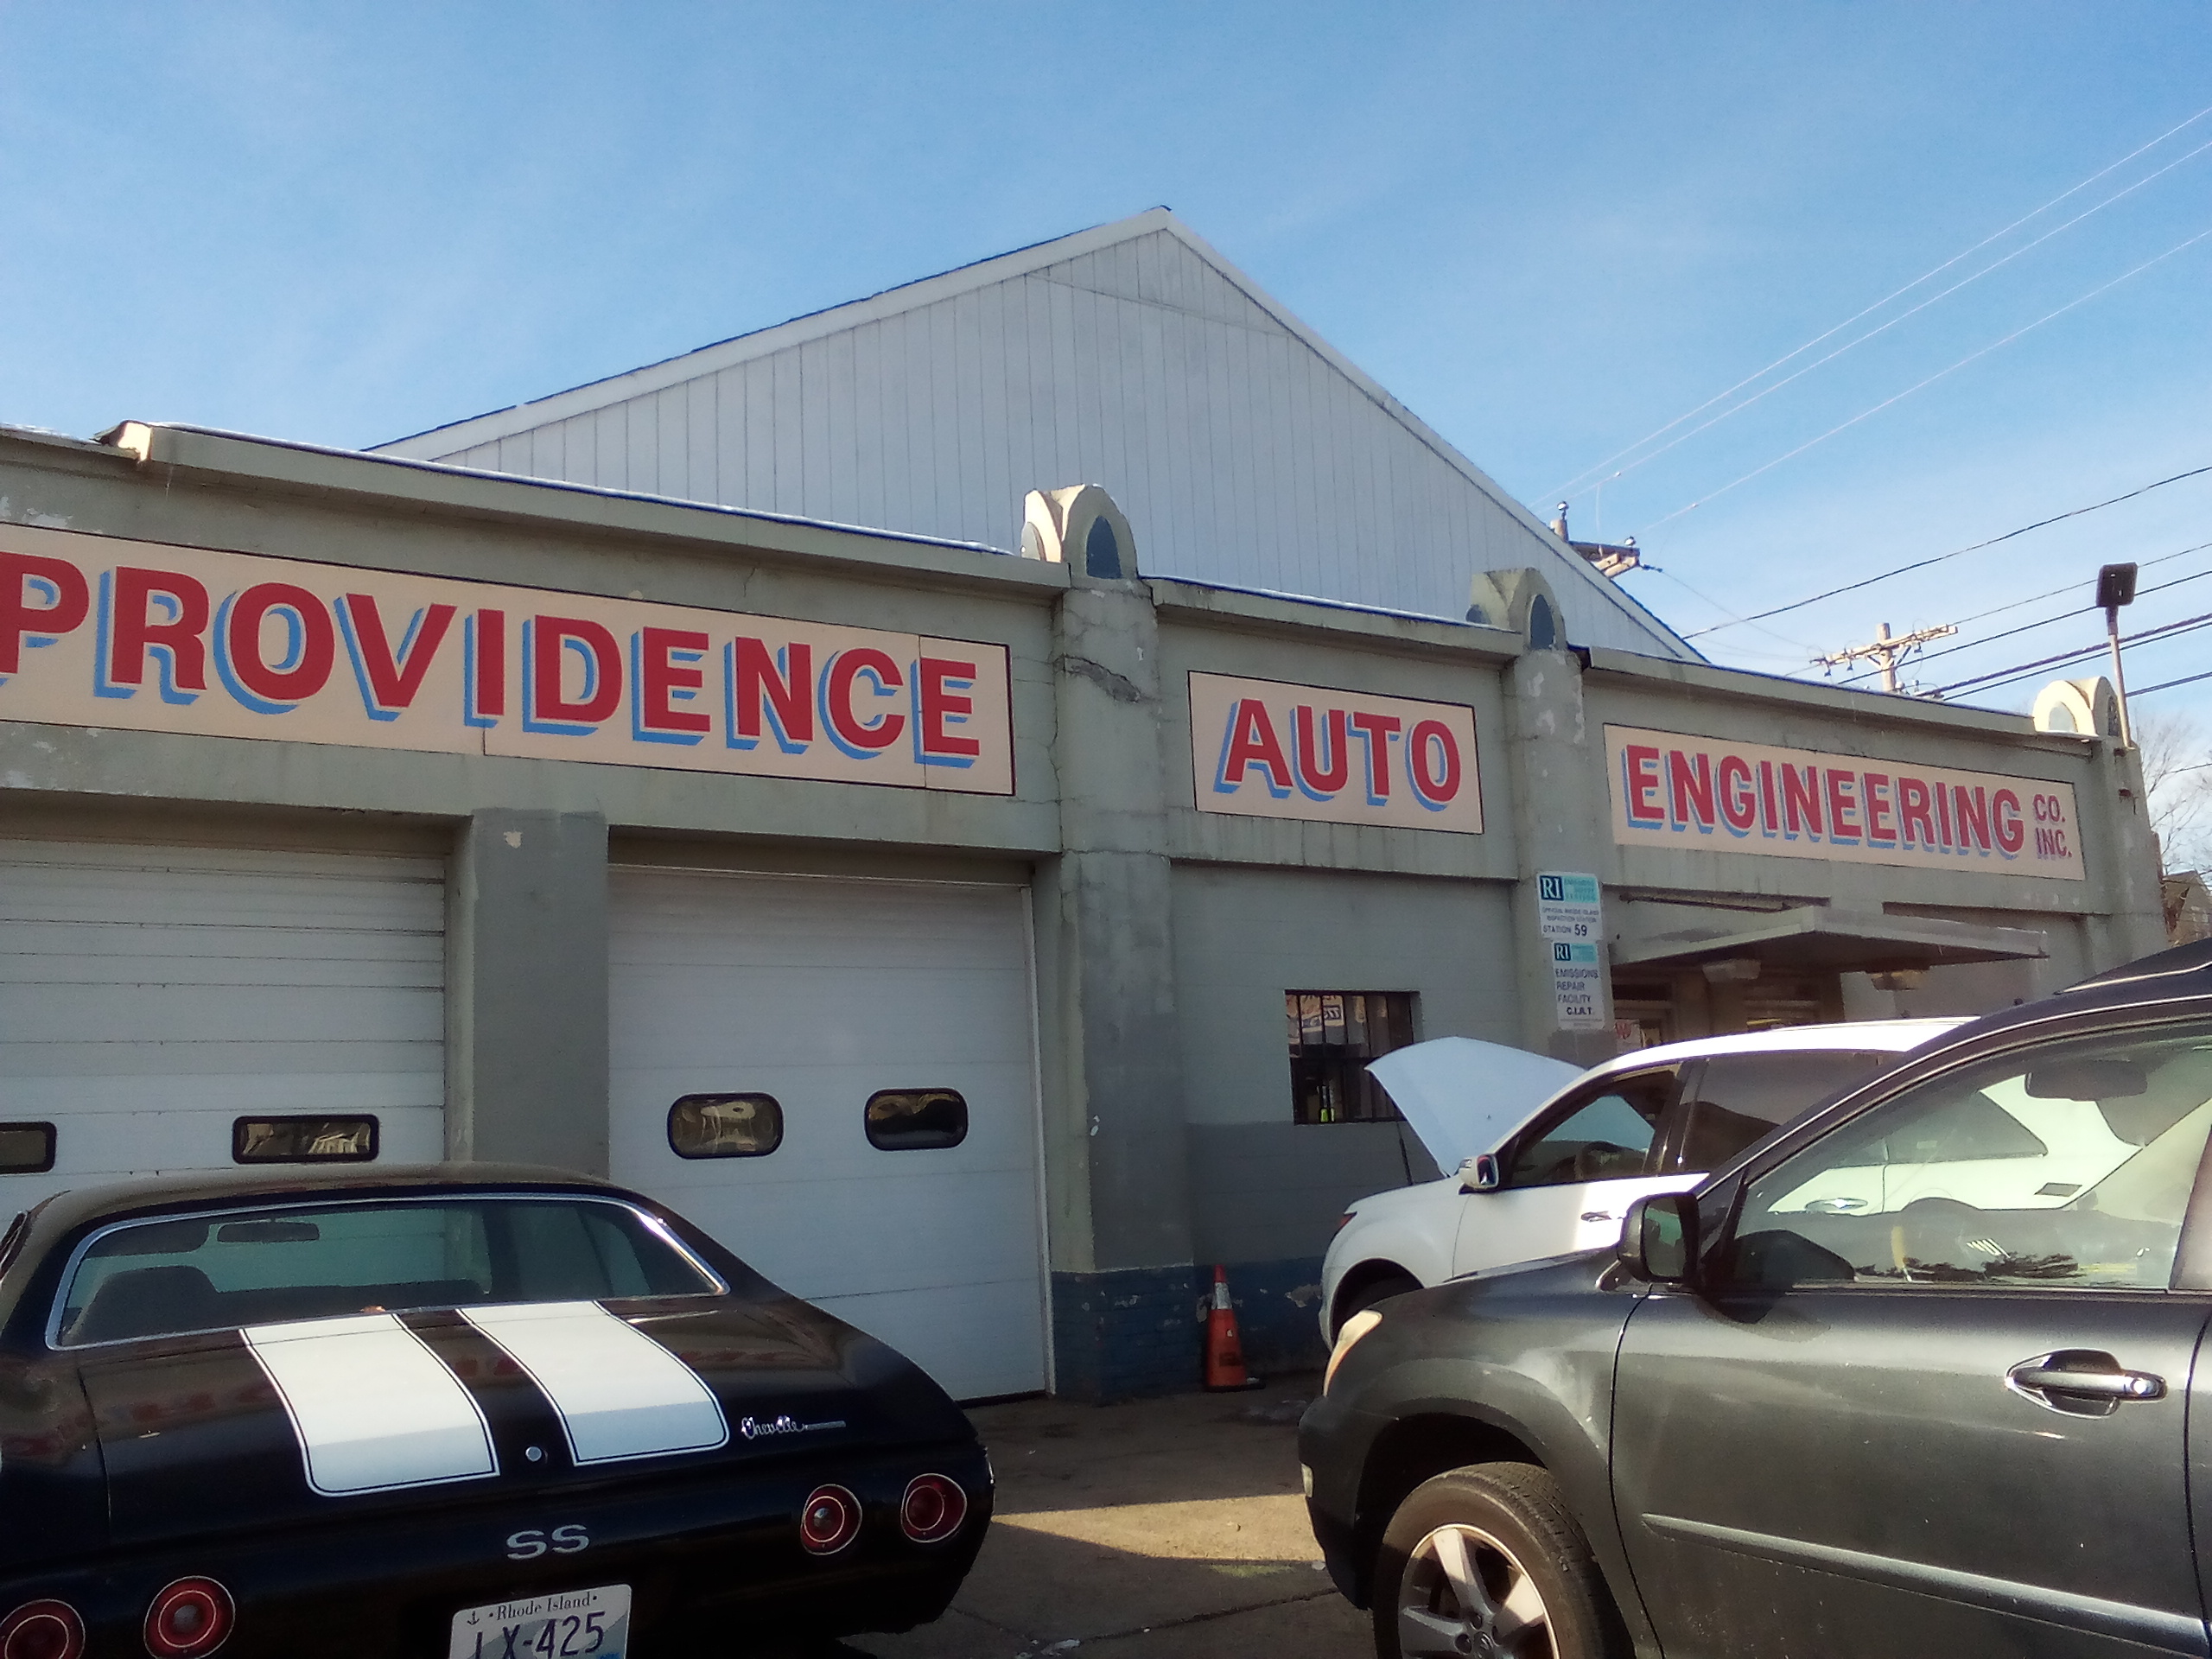 Providence Auto Engineering